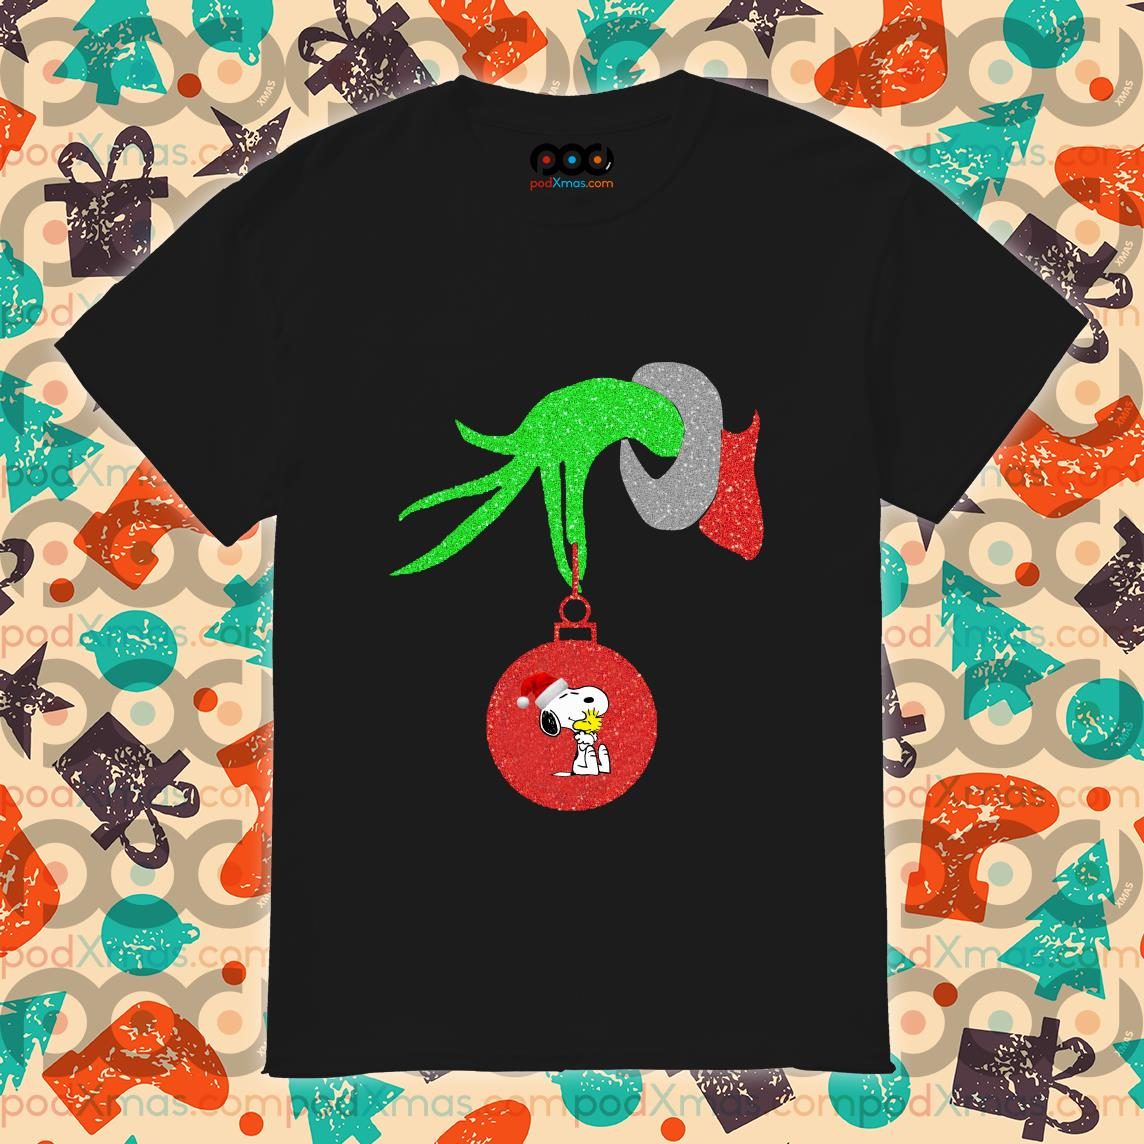 Grinch Hand holding Snoopy shirt